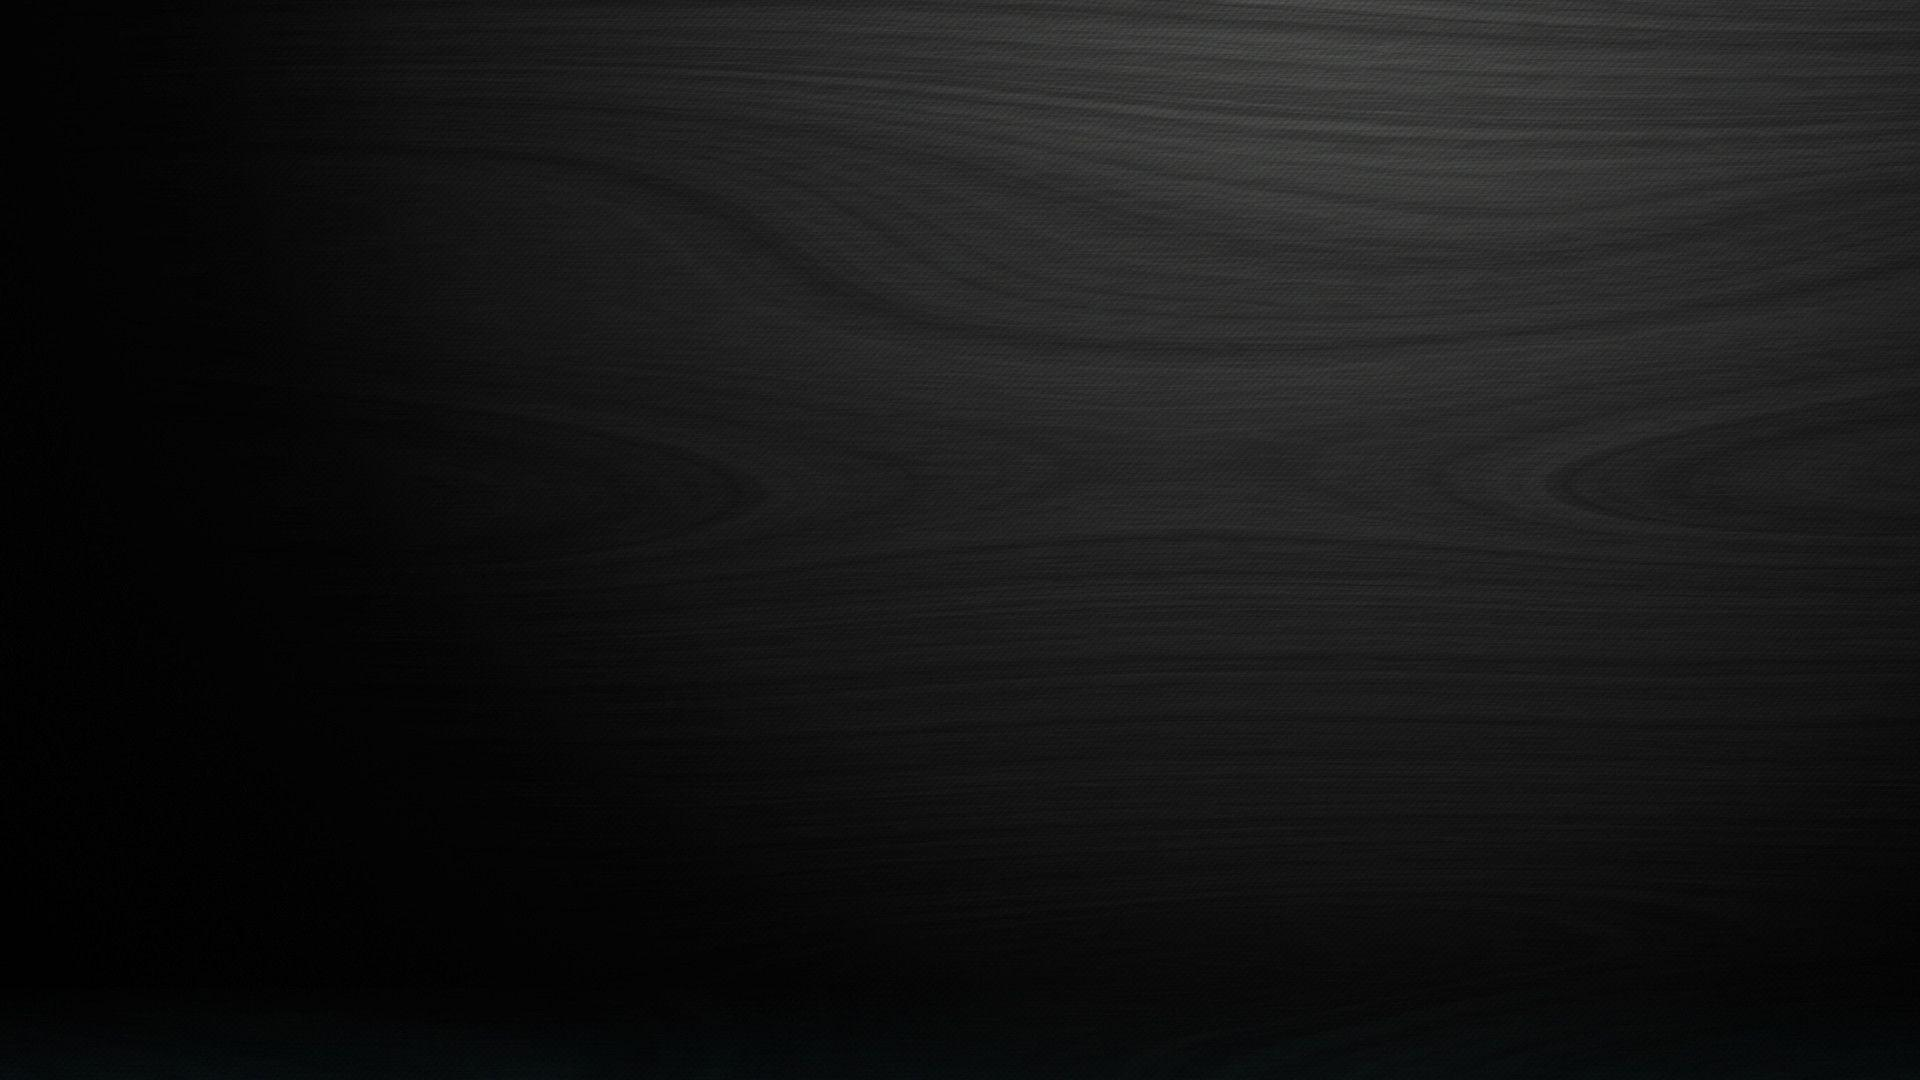 dark 1080p wallpaper material - photo #17